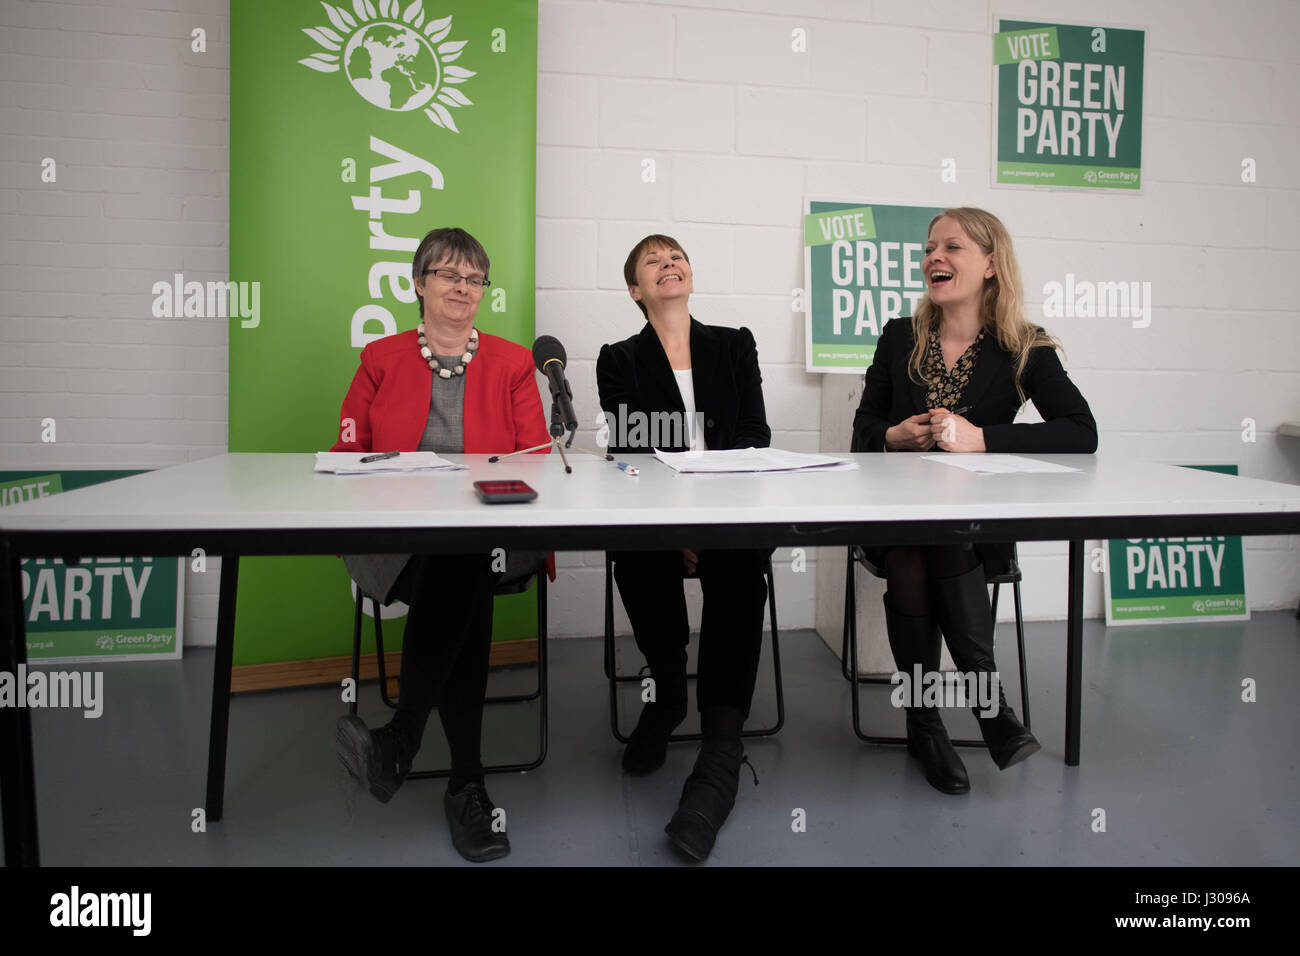 Co-Leader of the Green Party, Caroline Lucas, during the launch of the Green Party Brexit policy with Green MEP - Stock Image